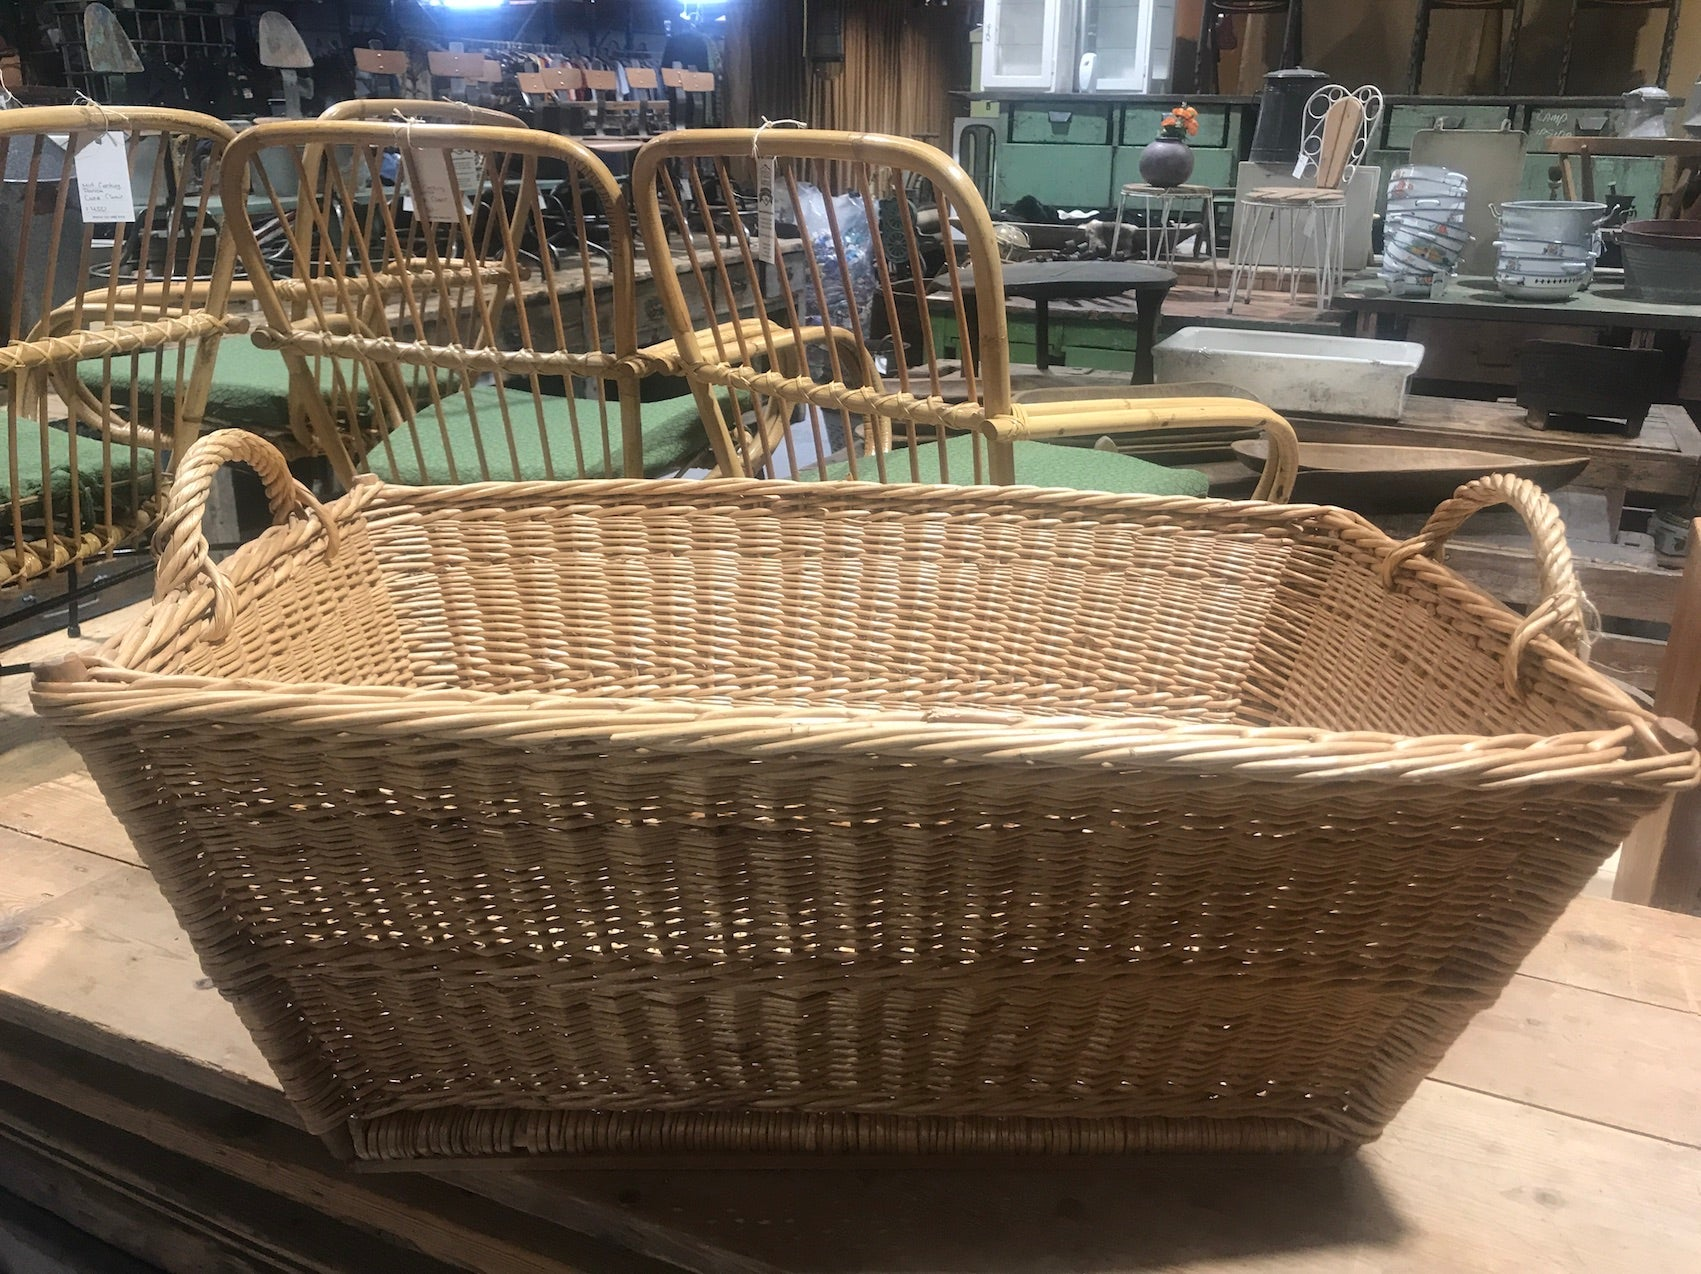 Vintage industrial French cane willow bakers basket  #2562/9